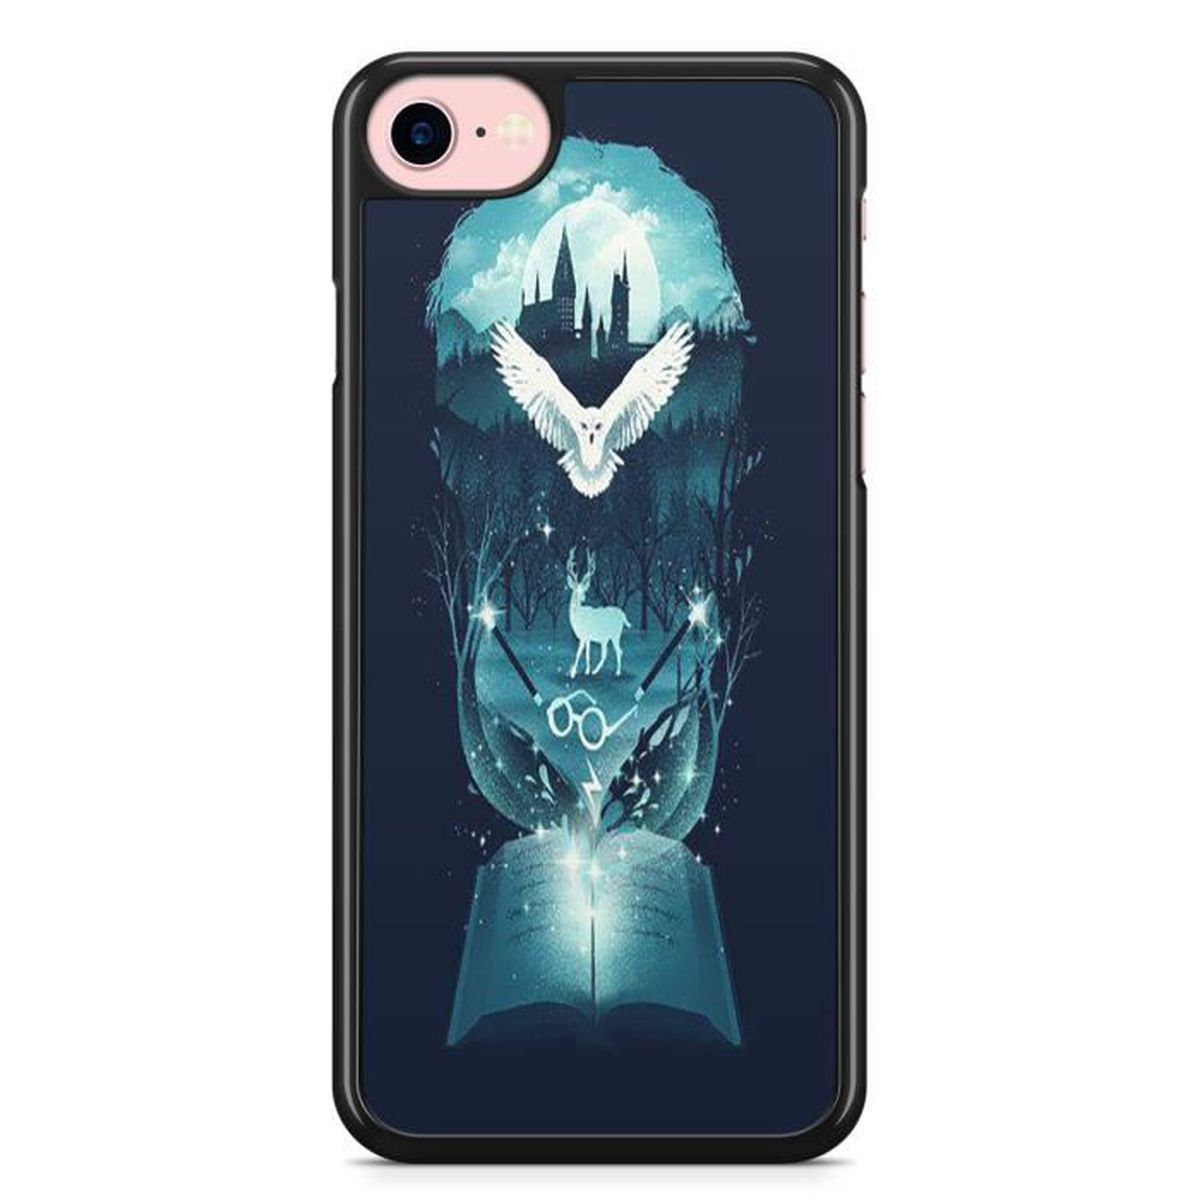 iphone 6 coque harry potter